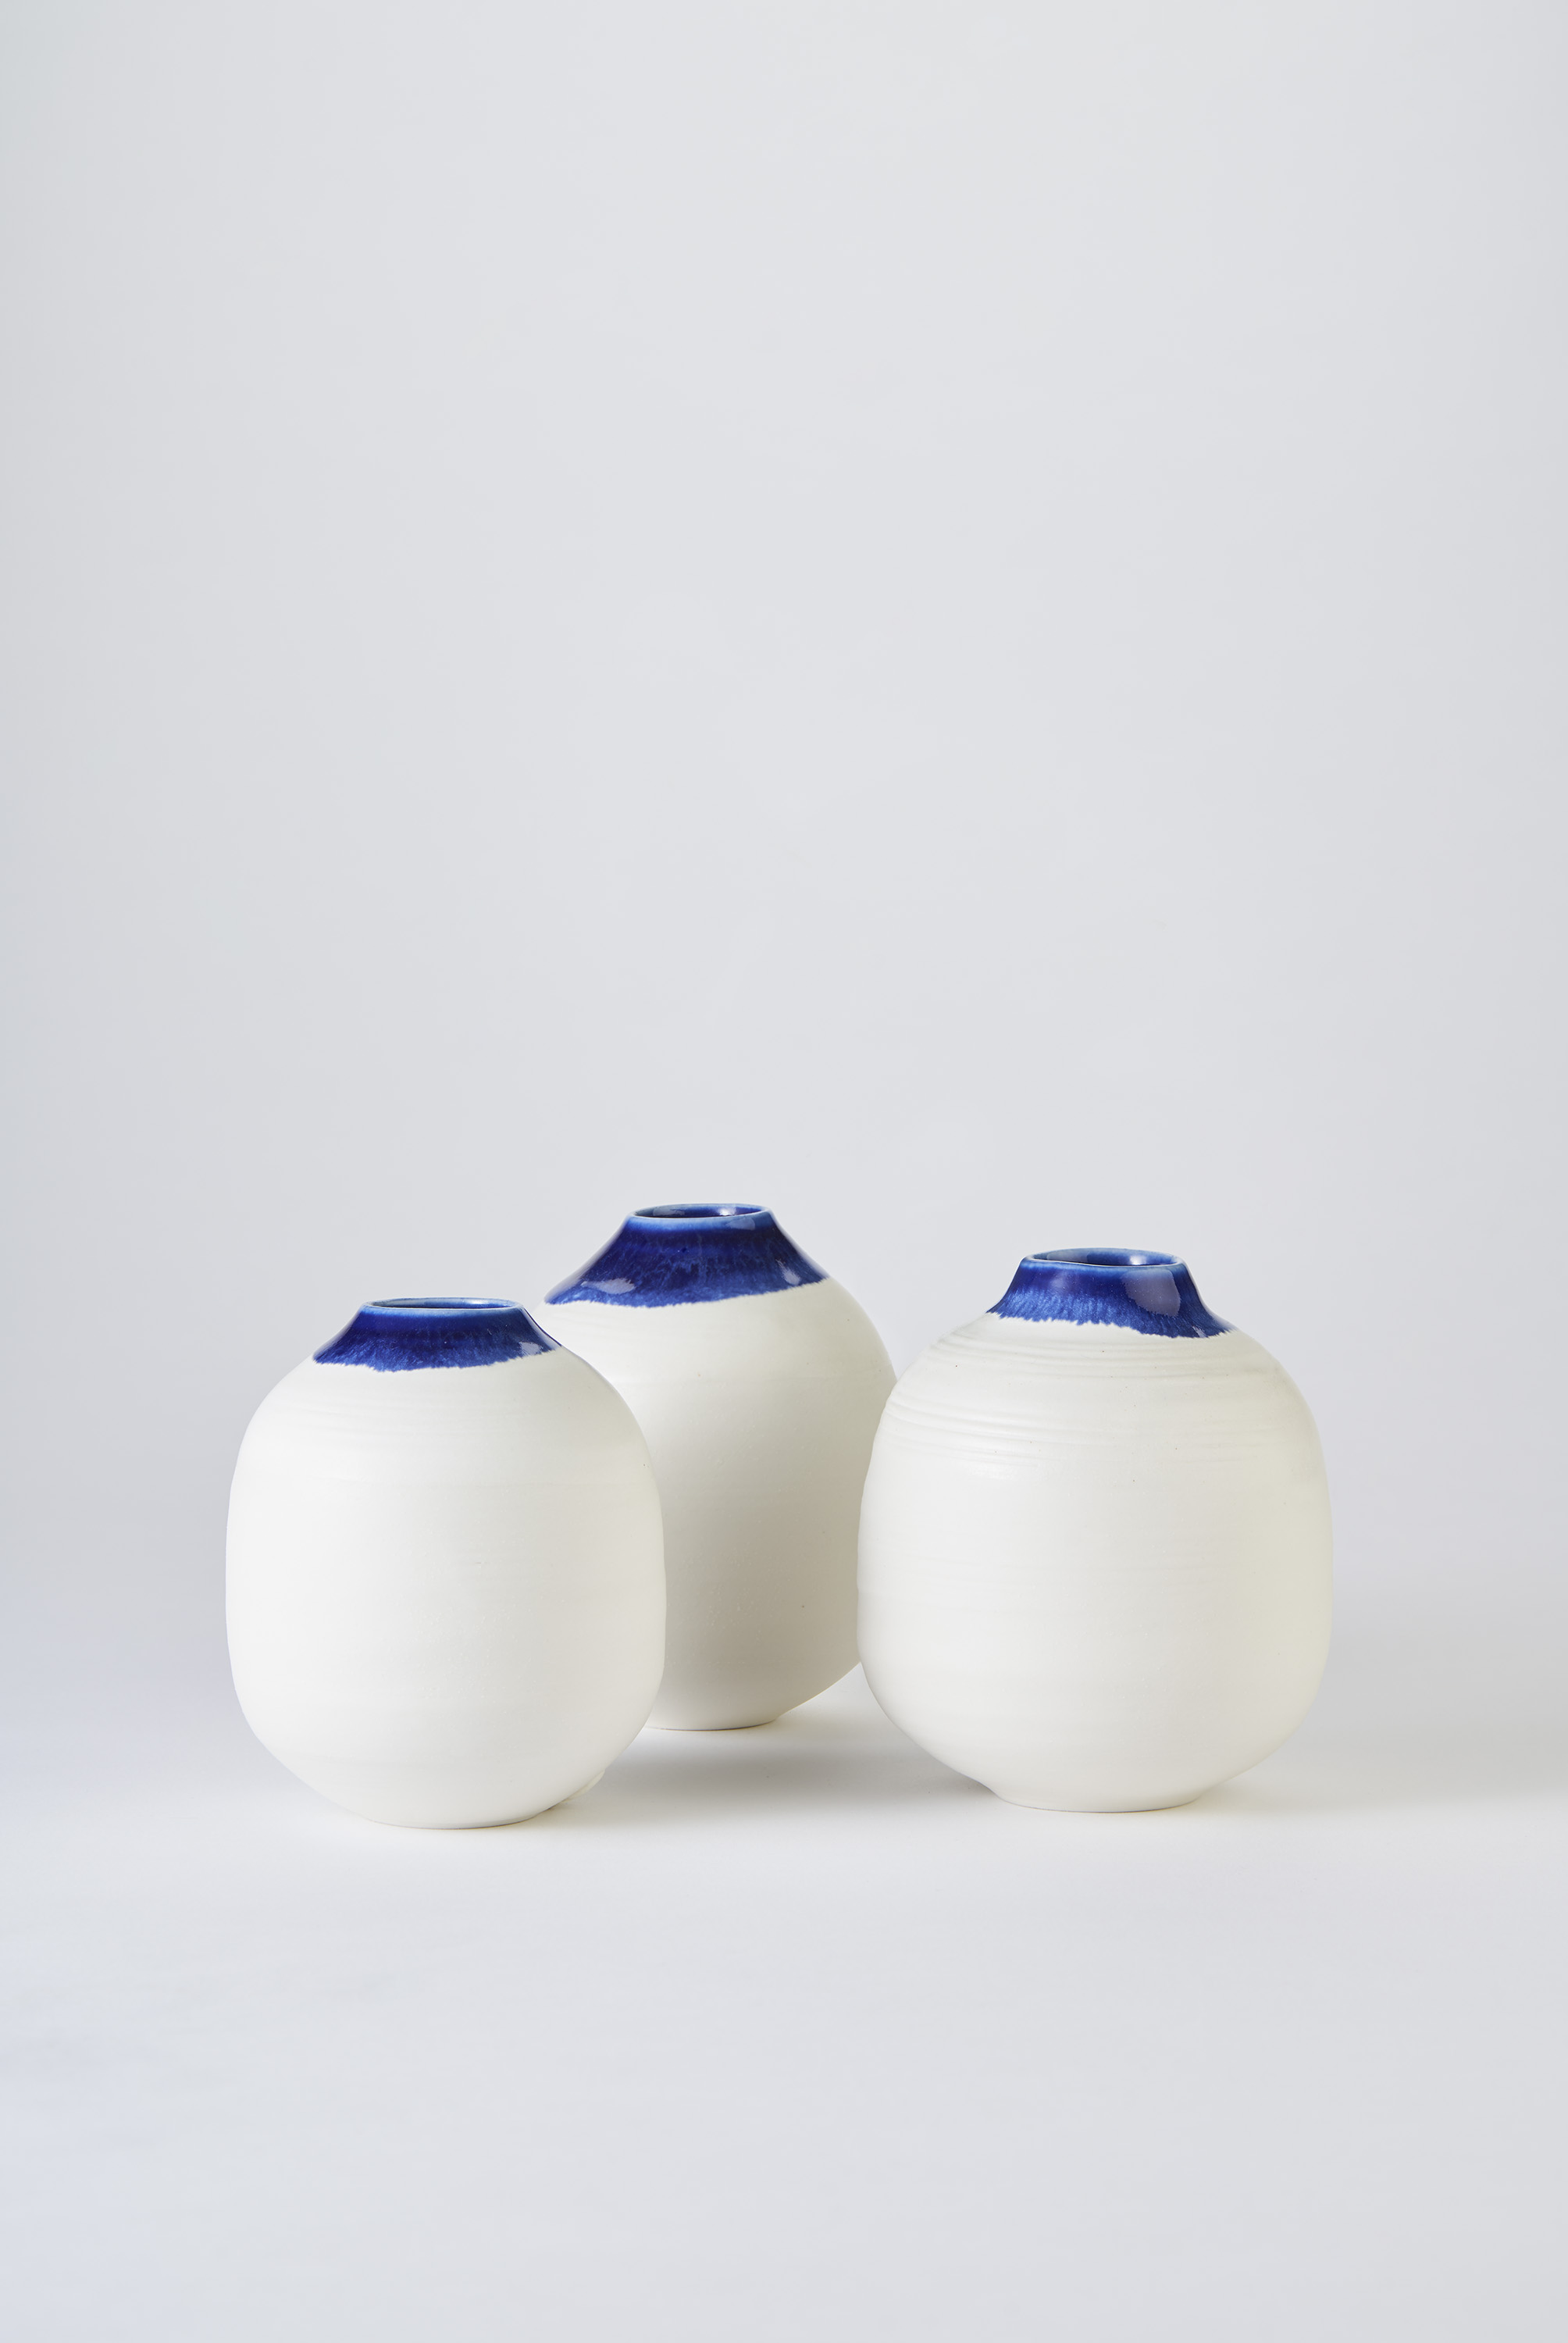 KA Ceramics Porcelain small moon jars with blue inside and blue:dol and tin on rim 3cm x 11cm. Matthew Booth Photography.jpg